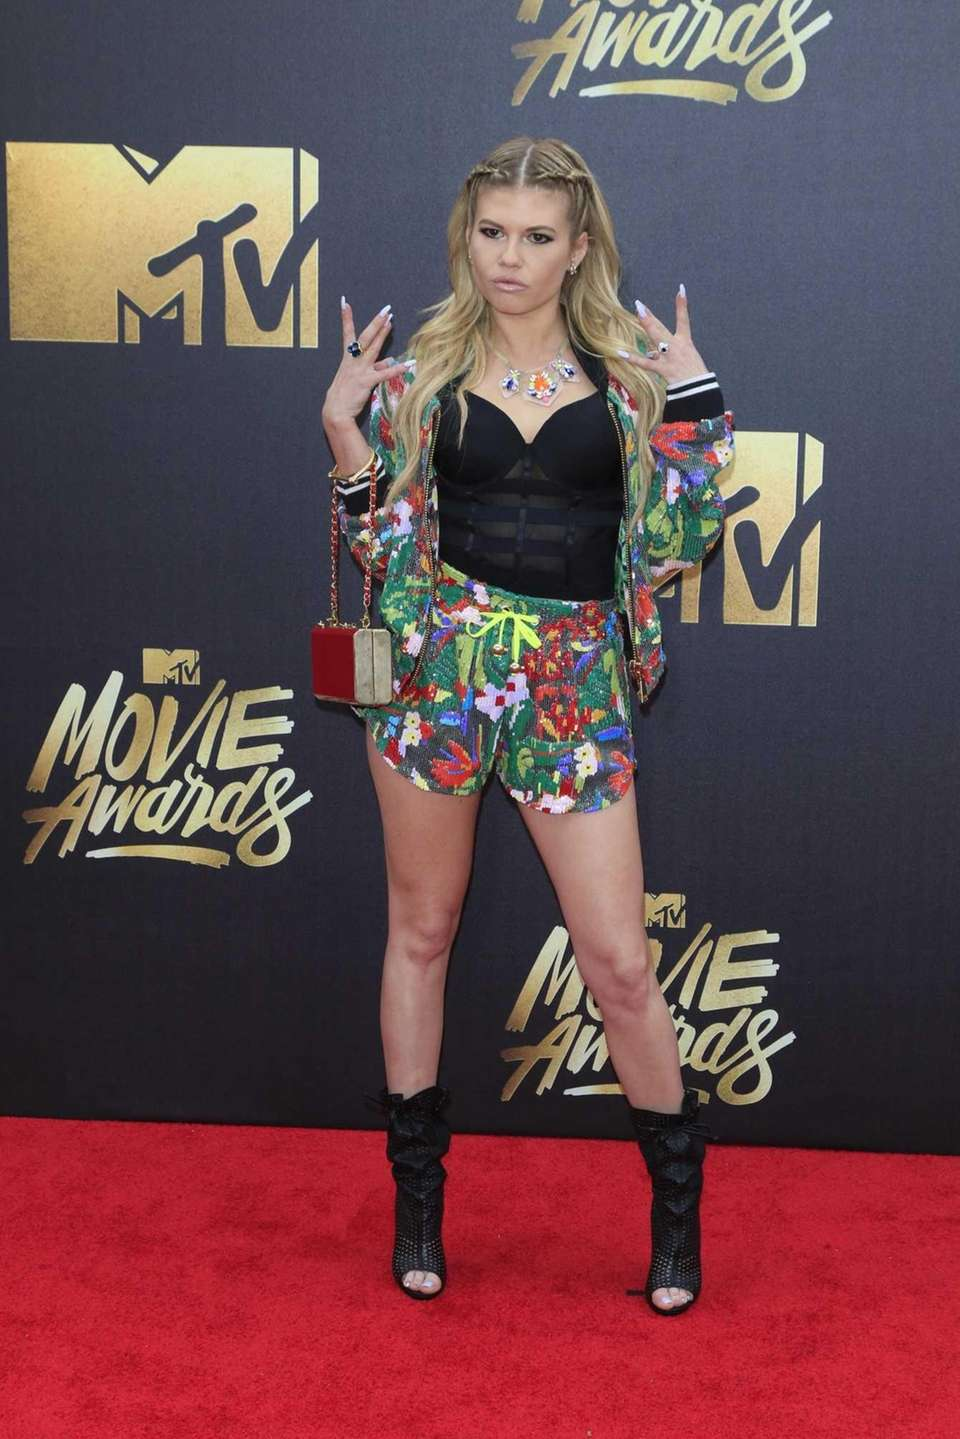 Entertainer and MTV star Chanel West Coast was